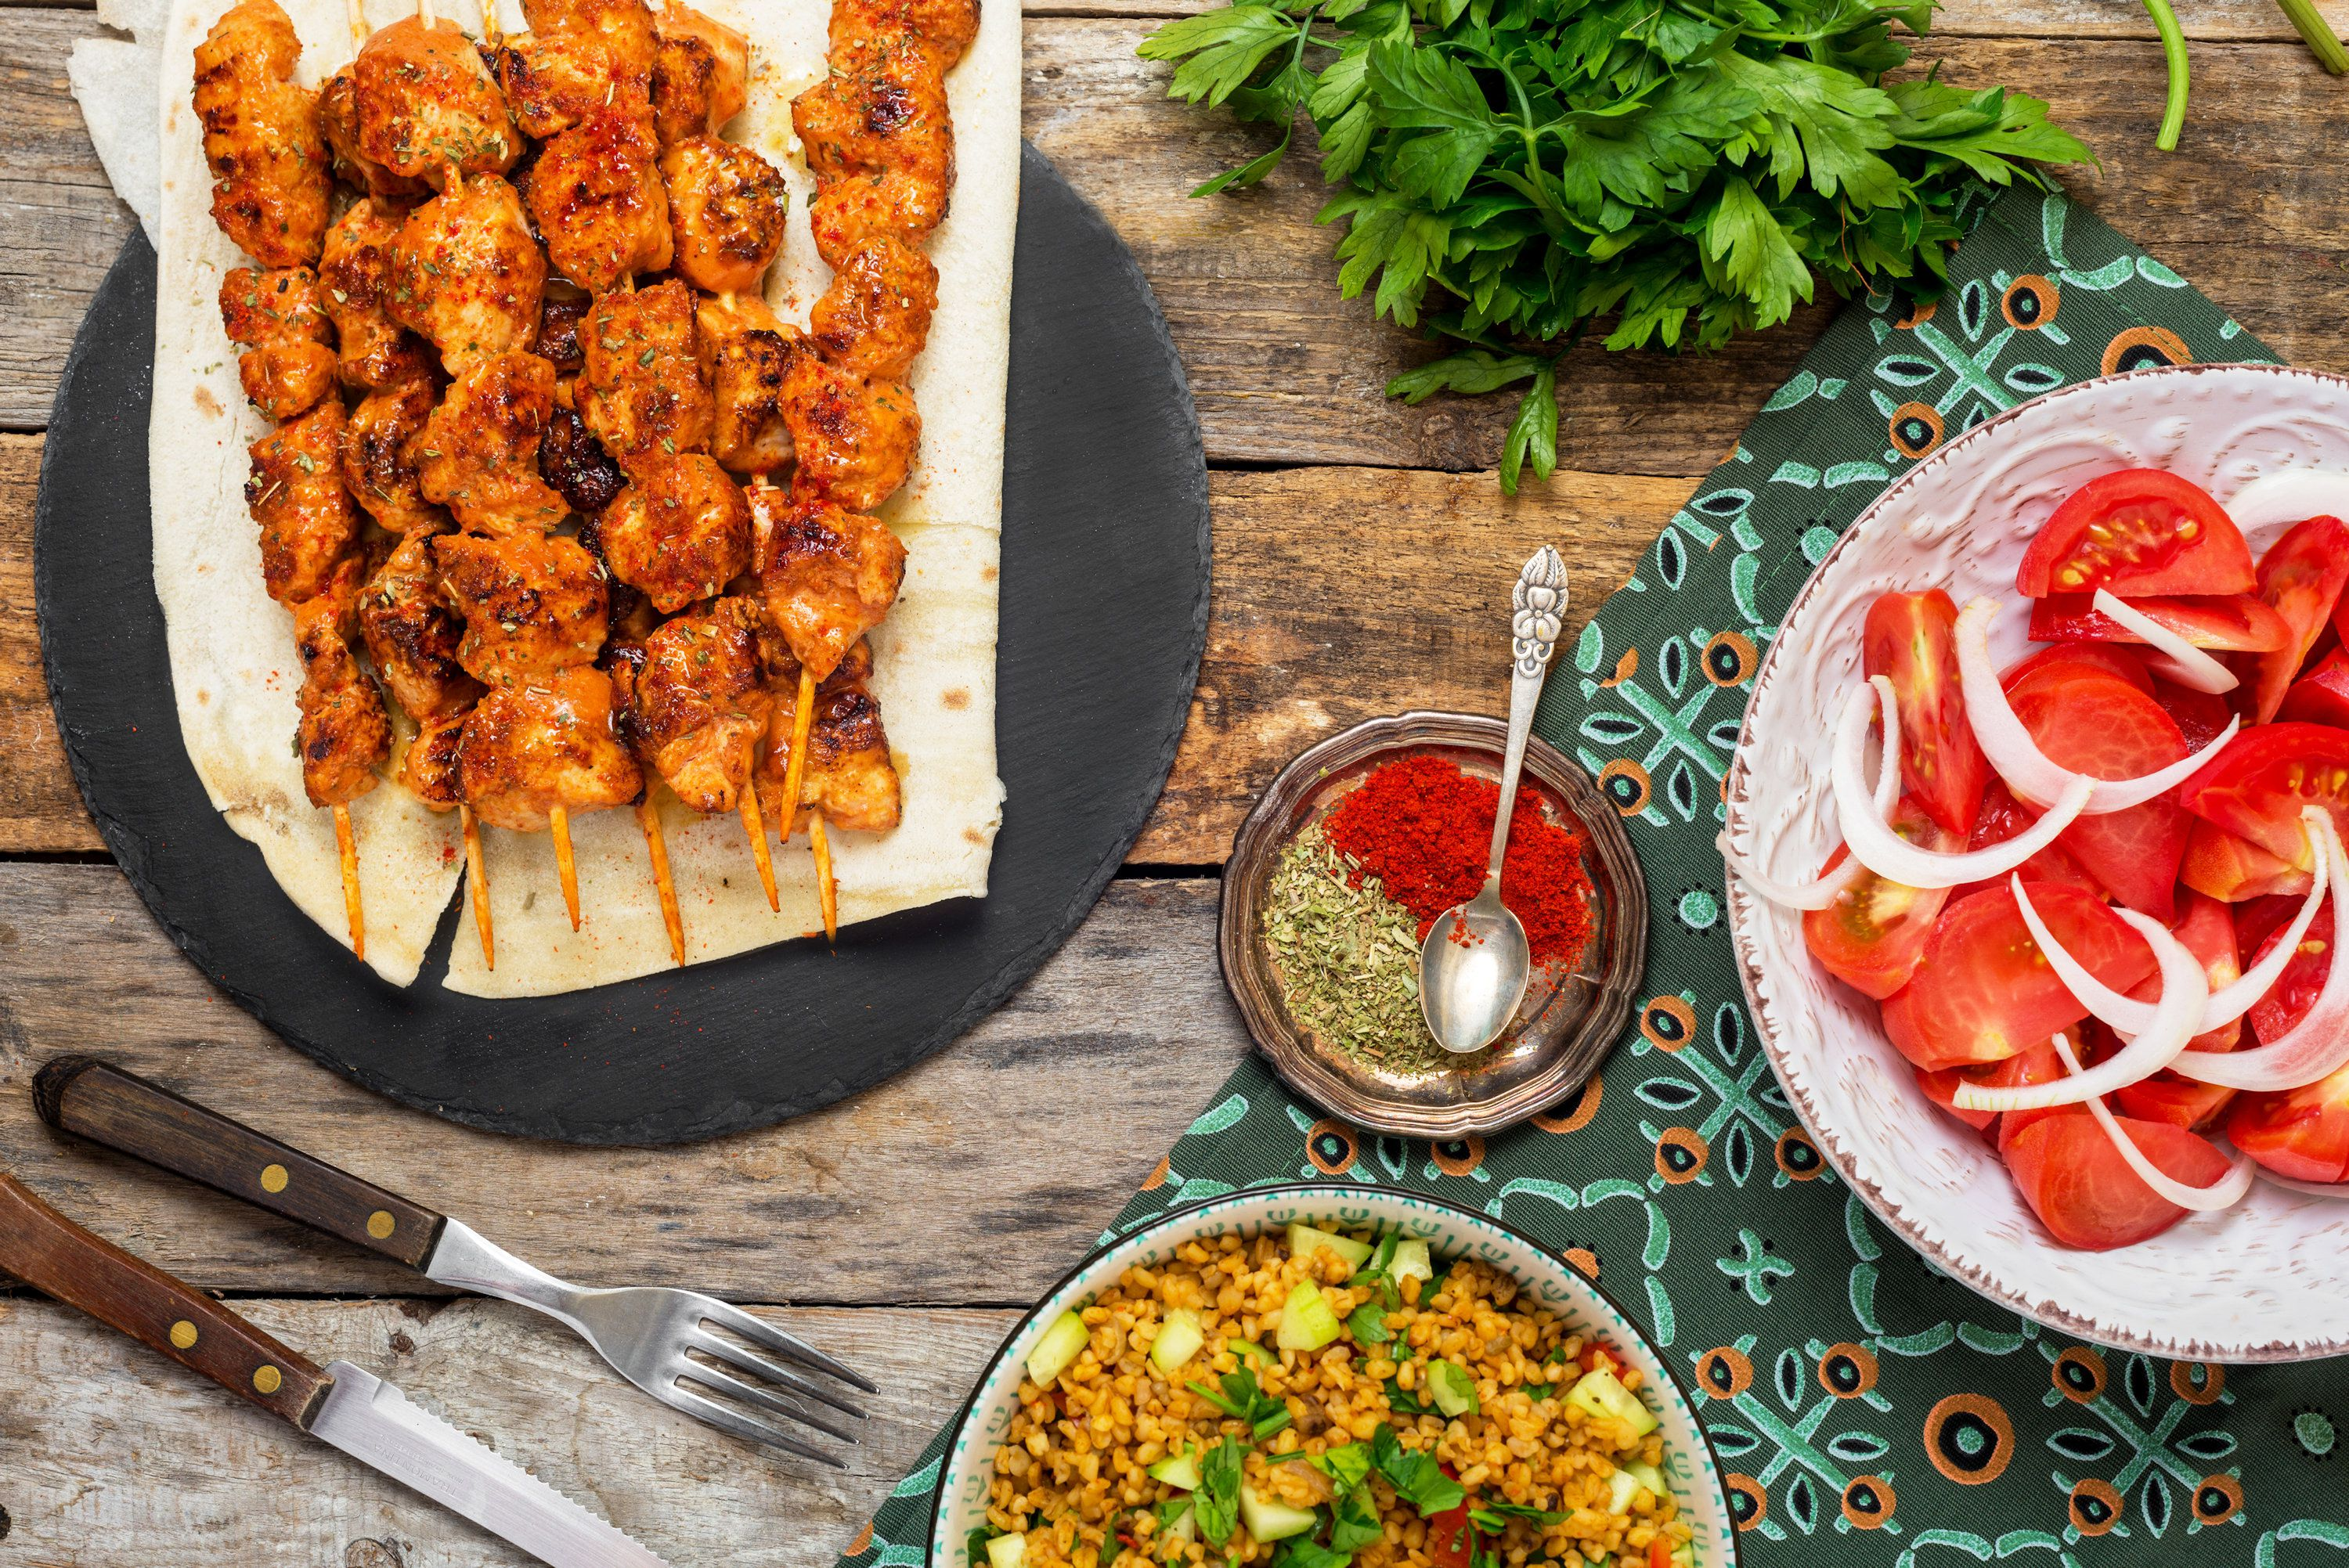 Turkish chicken kebab with sides and condiments